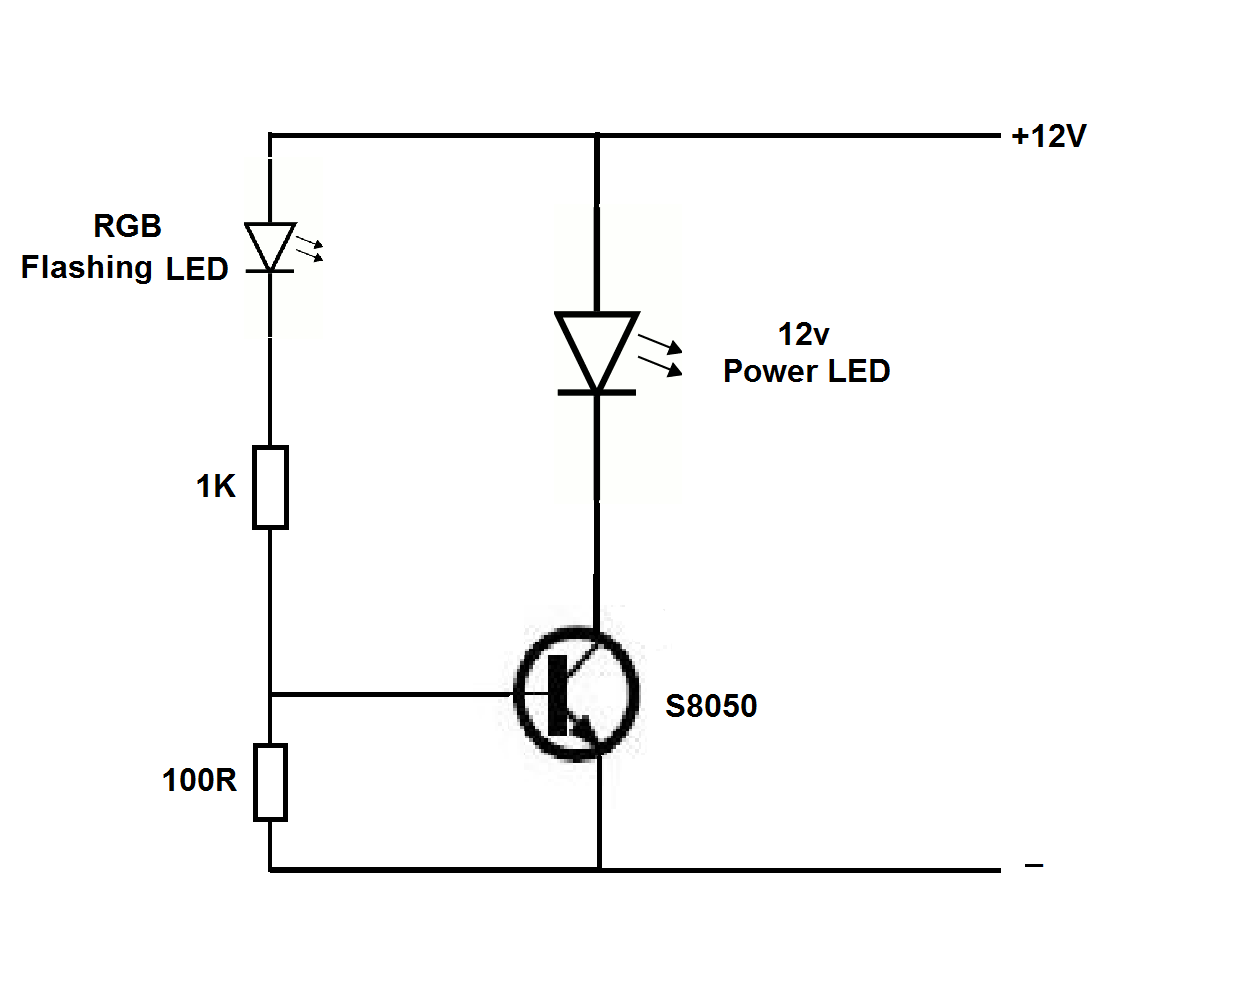 flasher%2Busing%2Bflashing%2BLED 12v power led flasher circuit using rgb flashing led ~ simple projects led flasher wiring diagram at bayanpartner.co